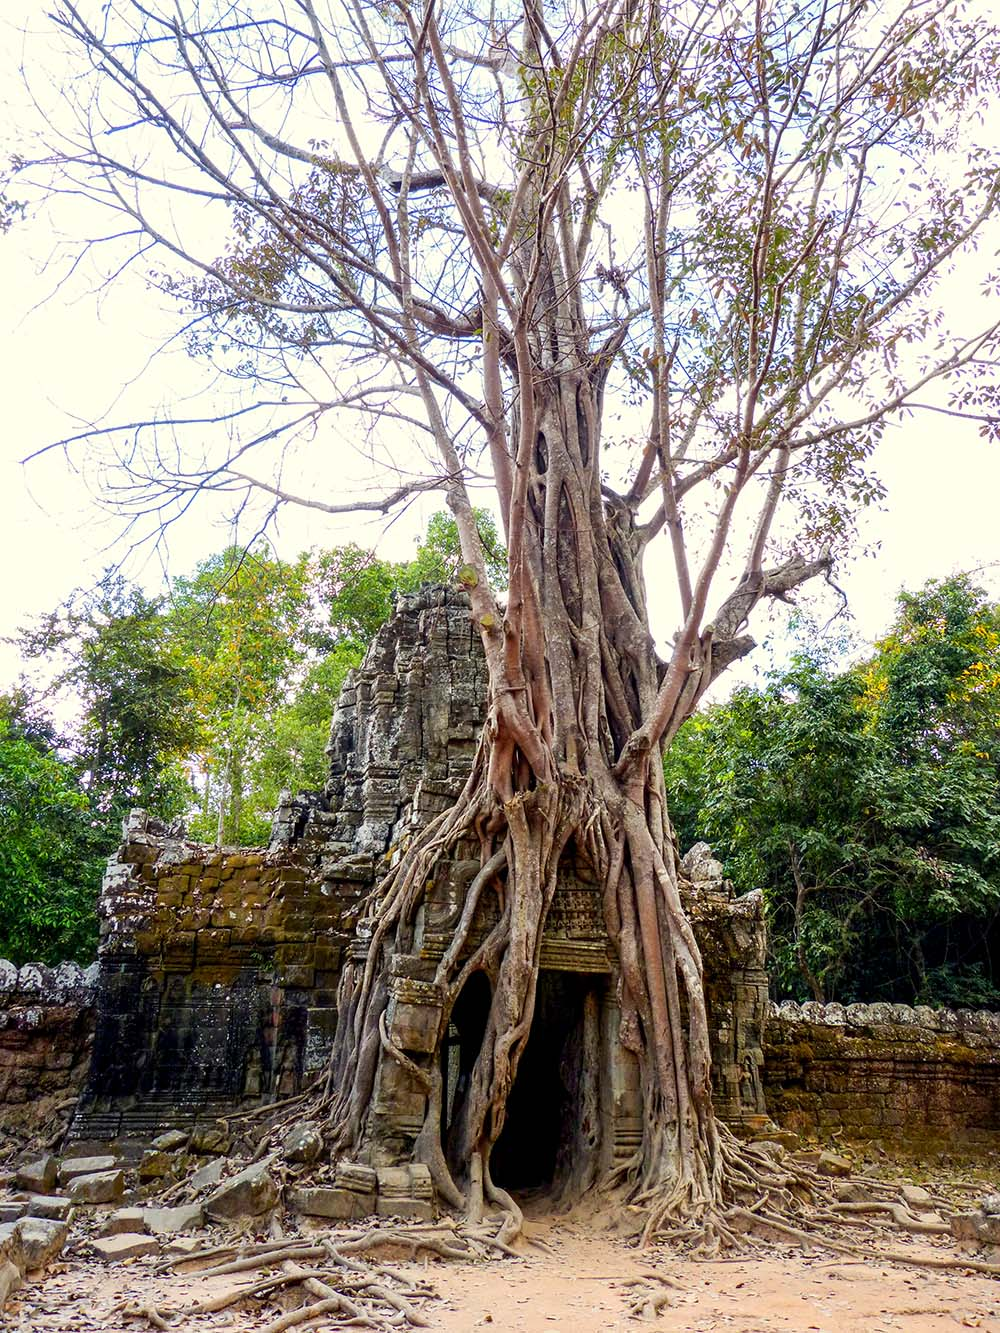 One of the most photogenic places in Angkor Wat